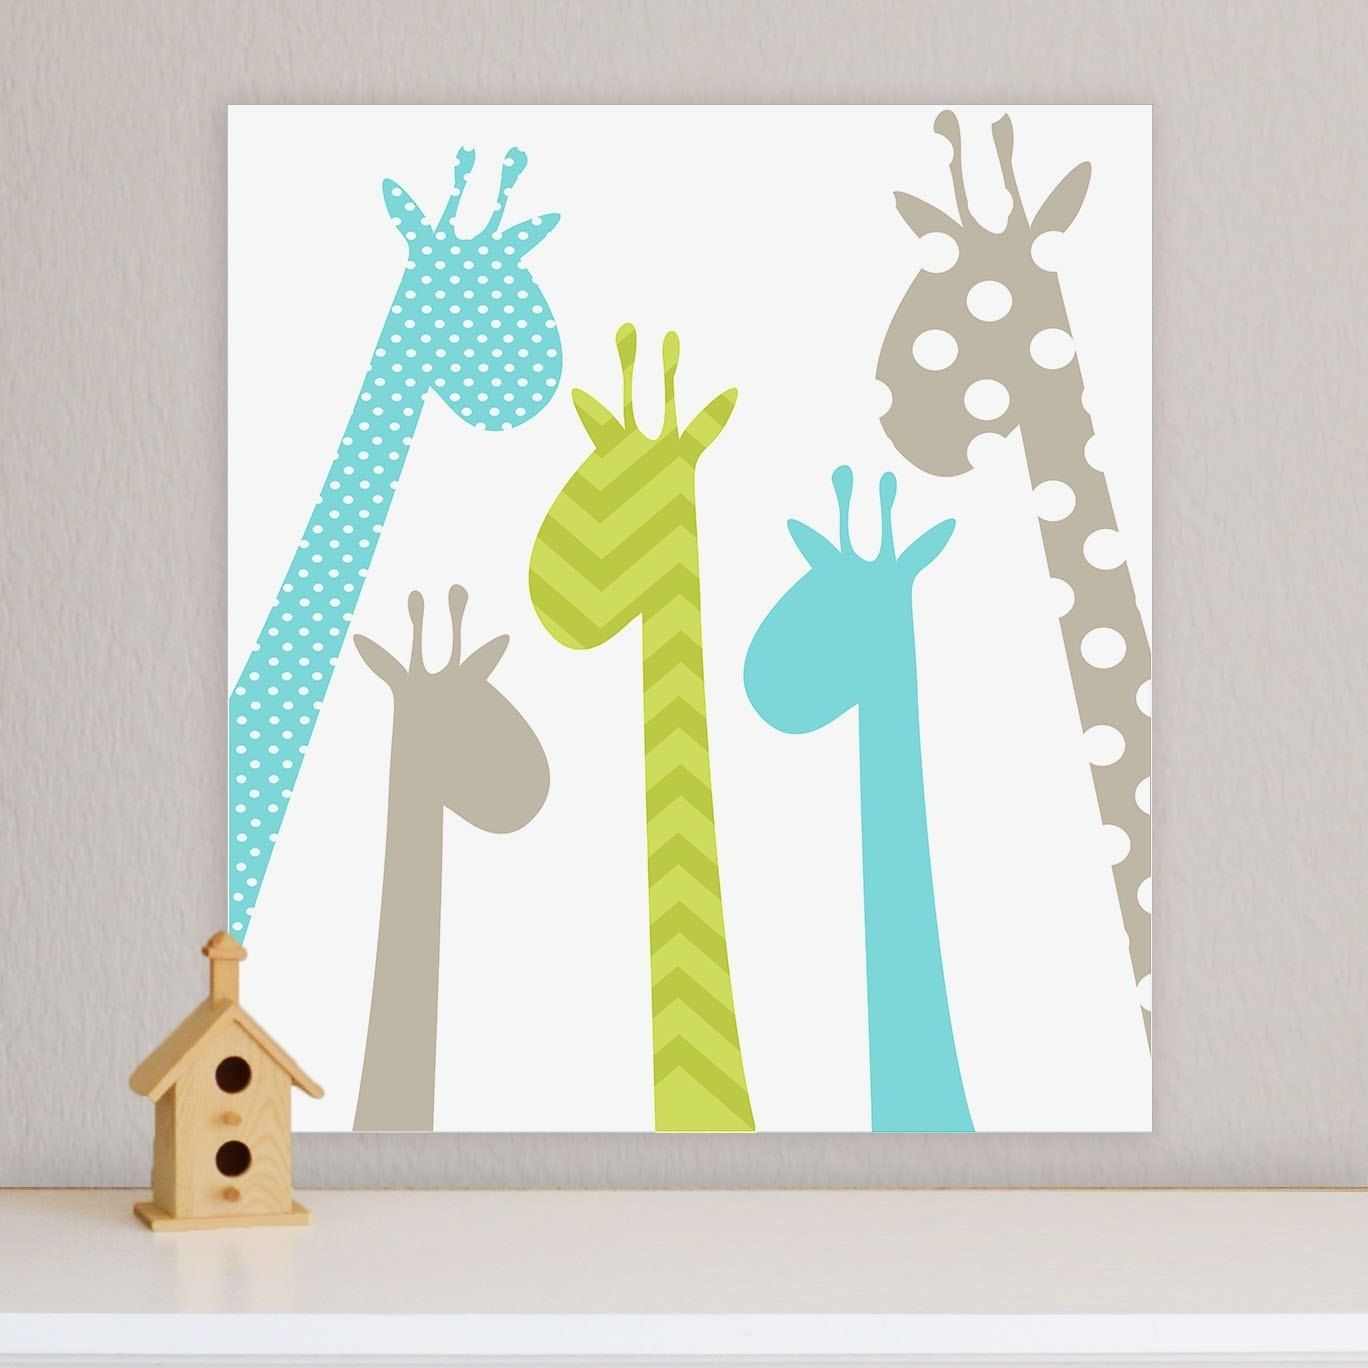 Famous Giraffe, Children's Wall Art, Nursery Wall Art, Giraffe Nursery Intended For Giraffe Canvas Wall Art (View 2 of 15)